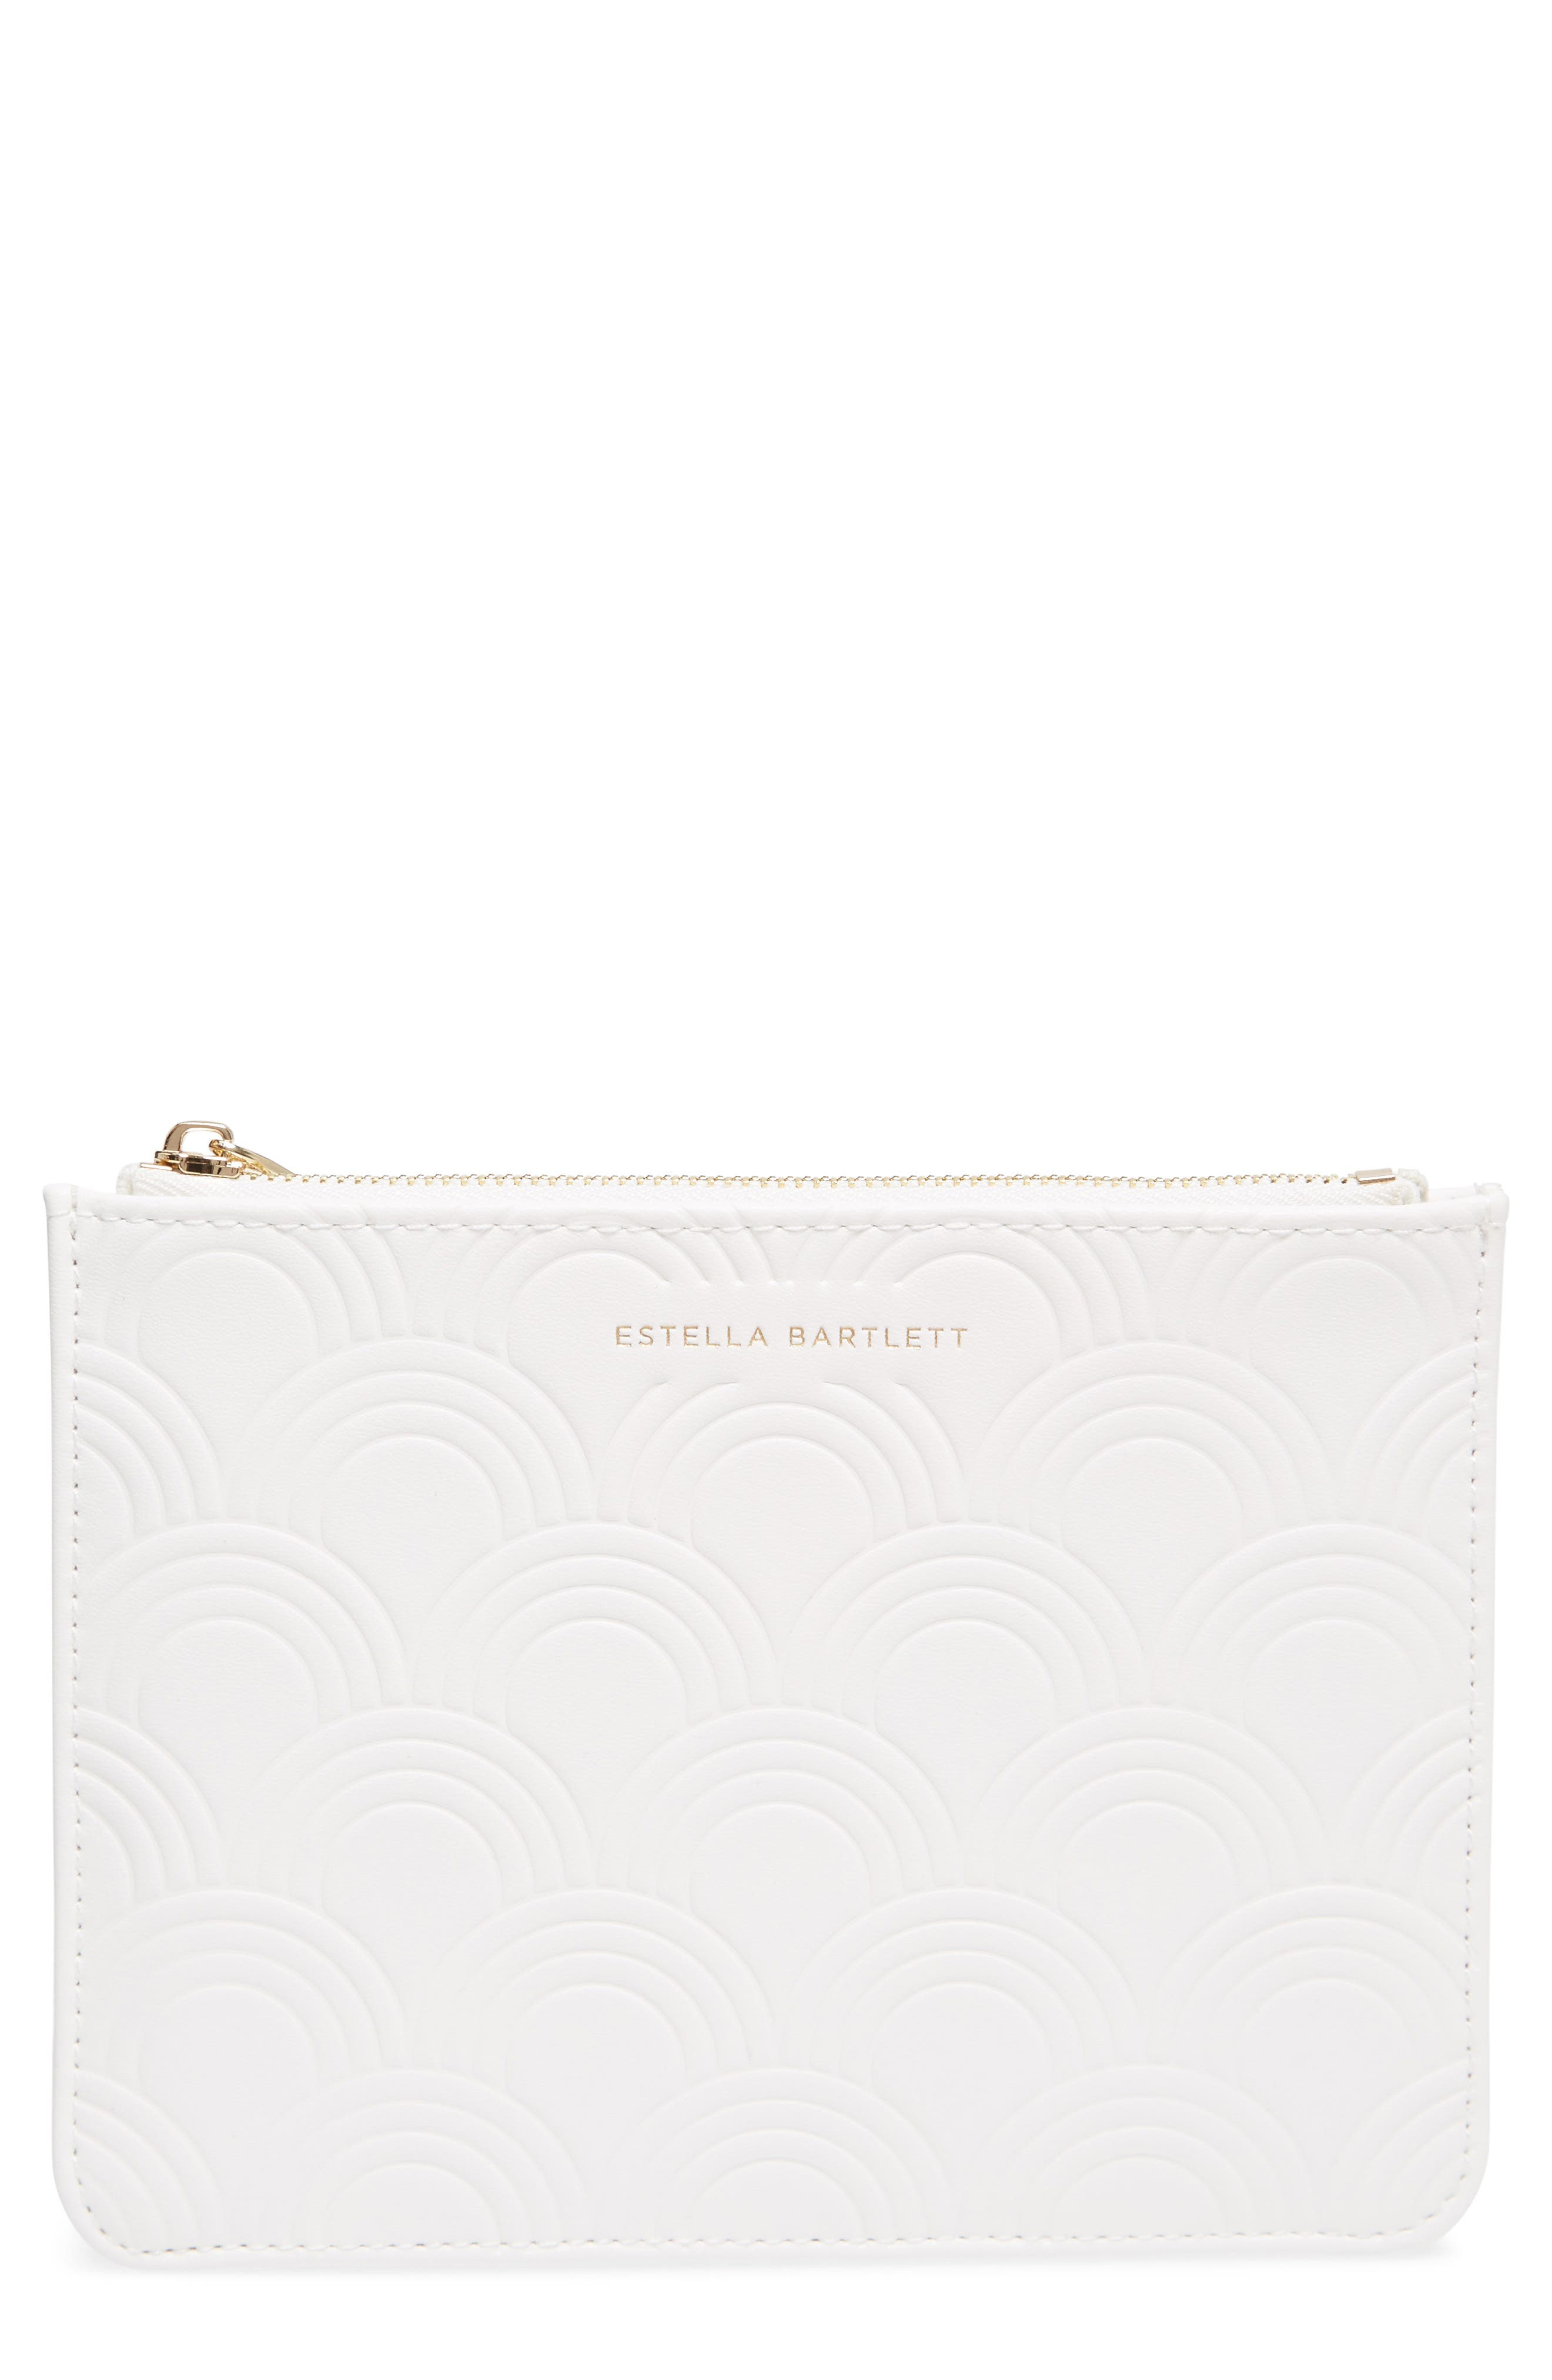 Small Embossed Faux Leather Pouch,                             Main thumbnail 1, color,                             900